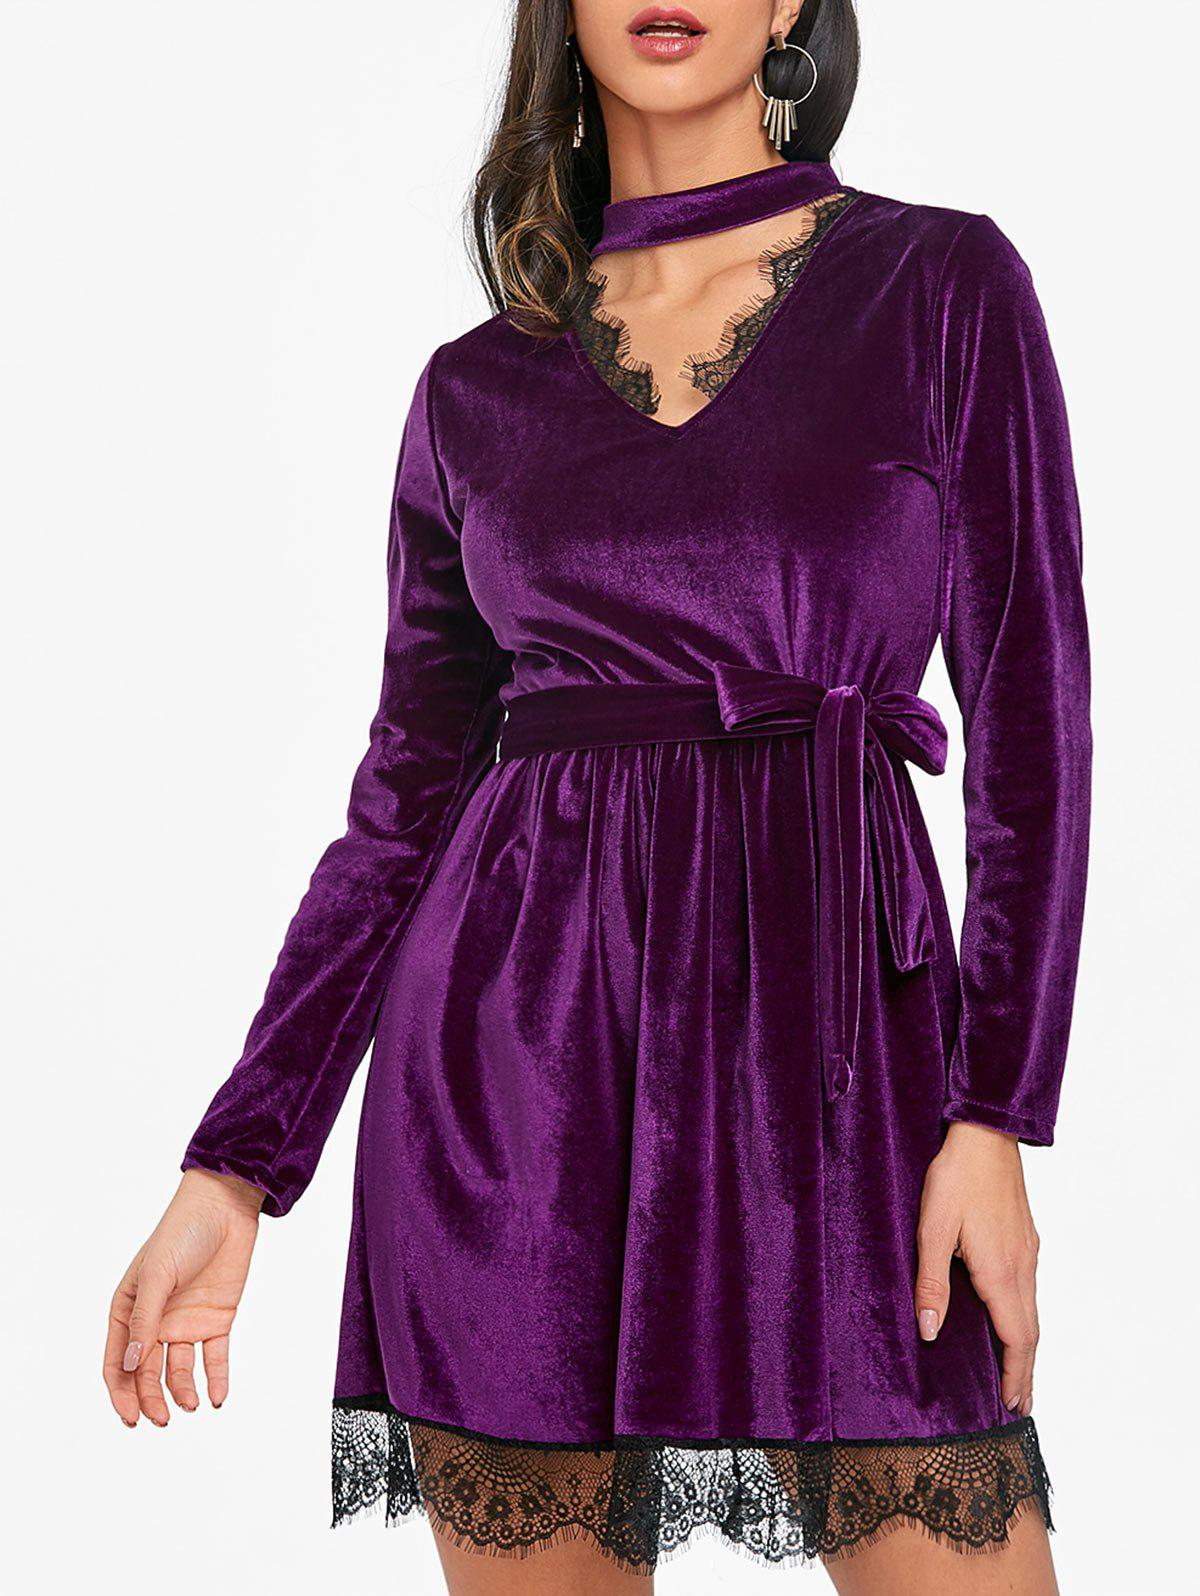 Lace Ttrimmed Belted Velvet Dress - PURPLE L